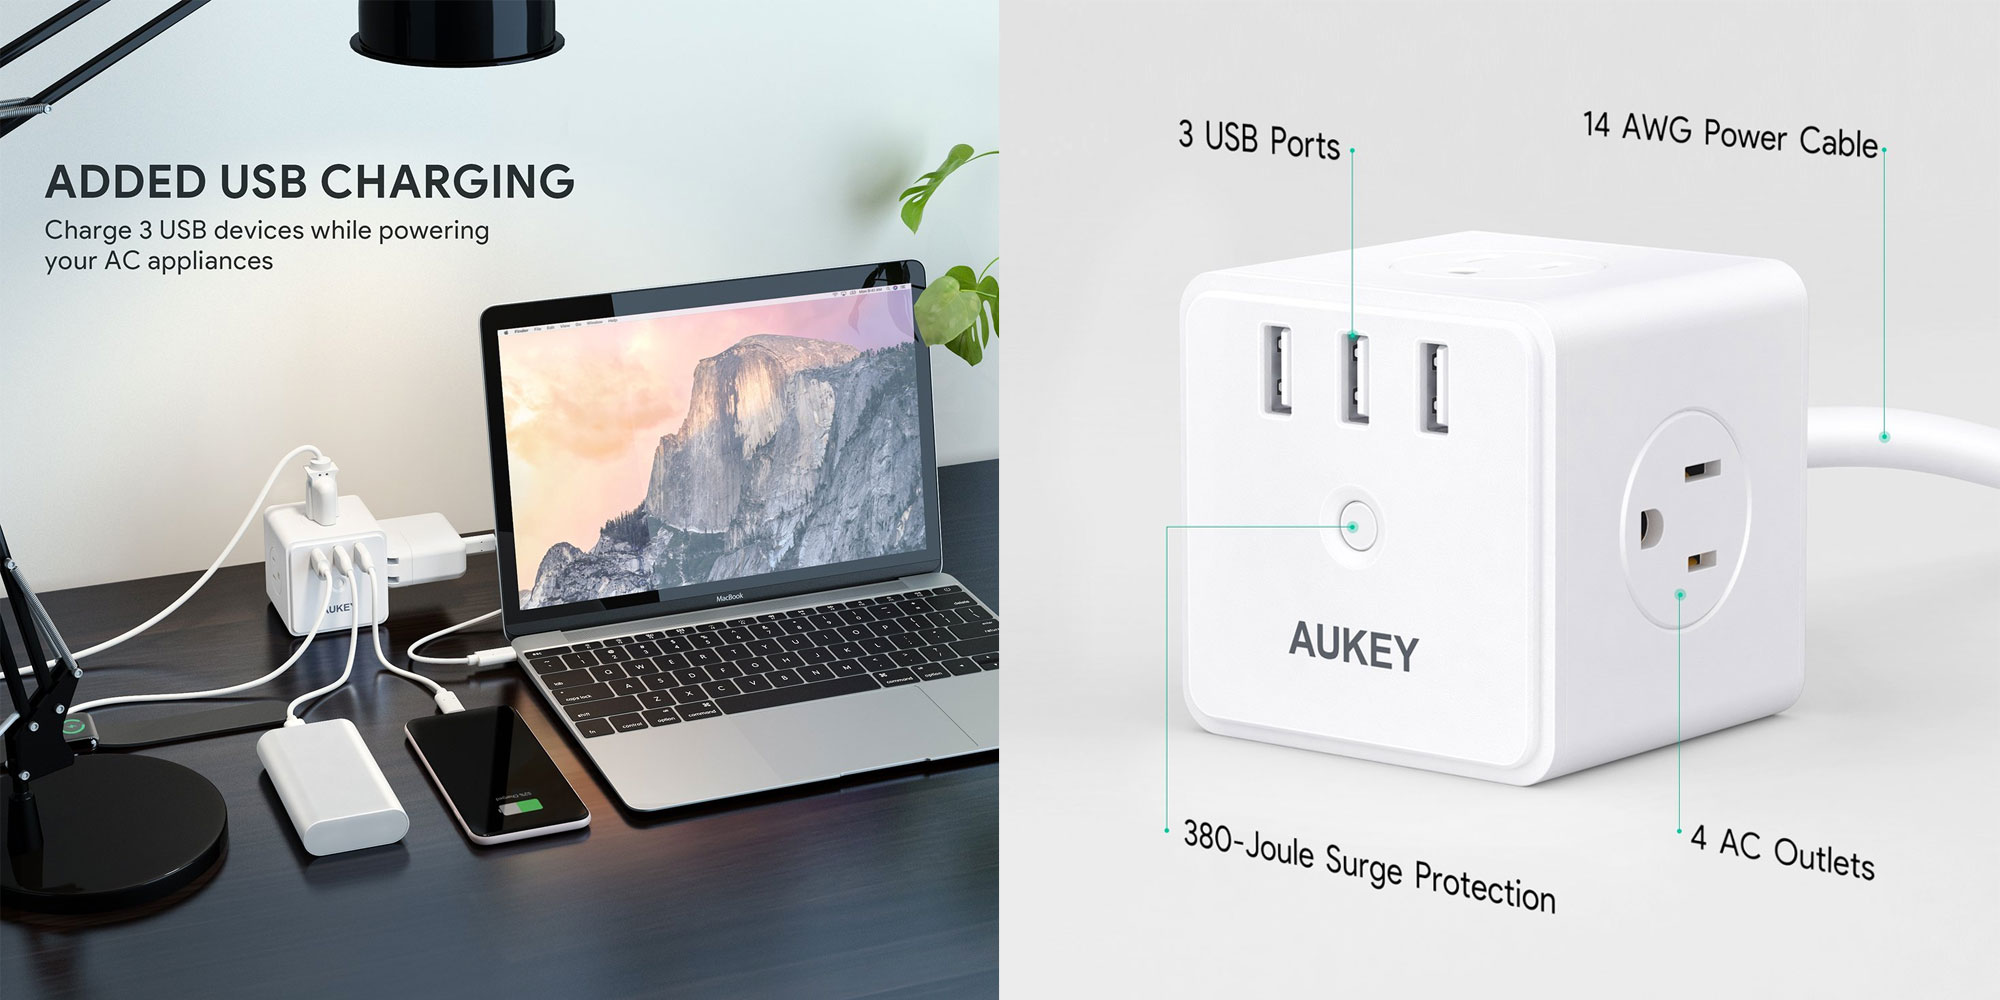 Aukey's power strip has four AC outlets and three USB ports w/ 2.4A charging at $20